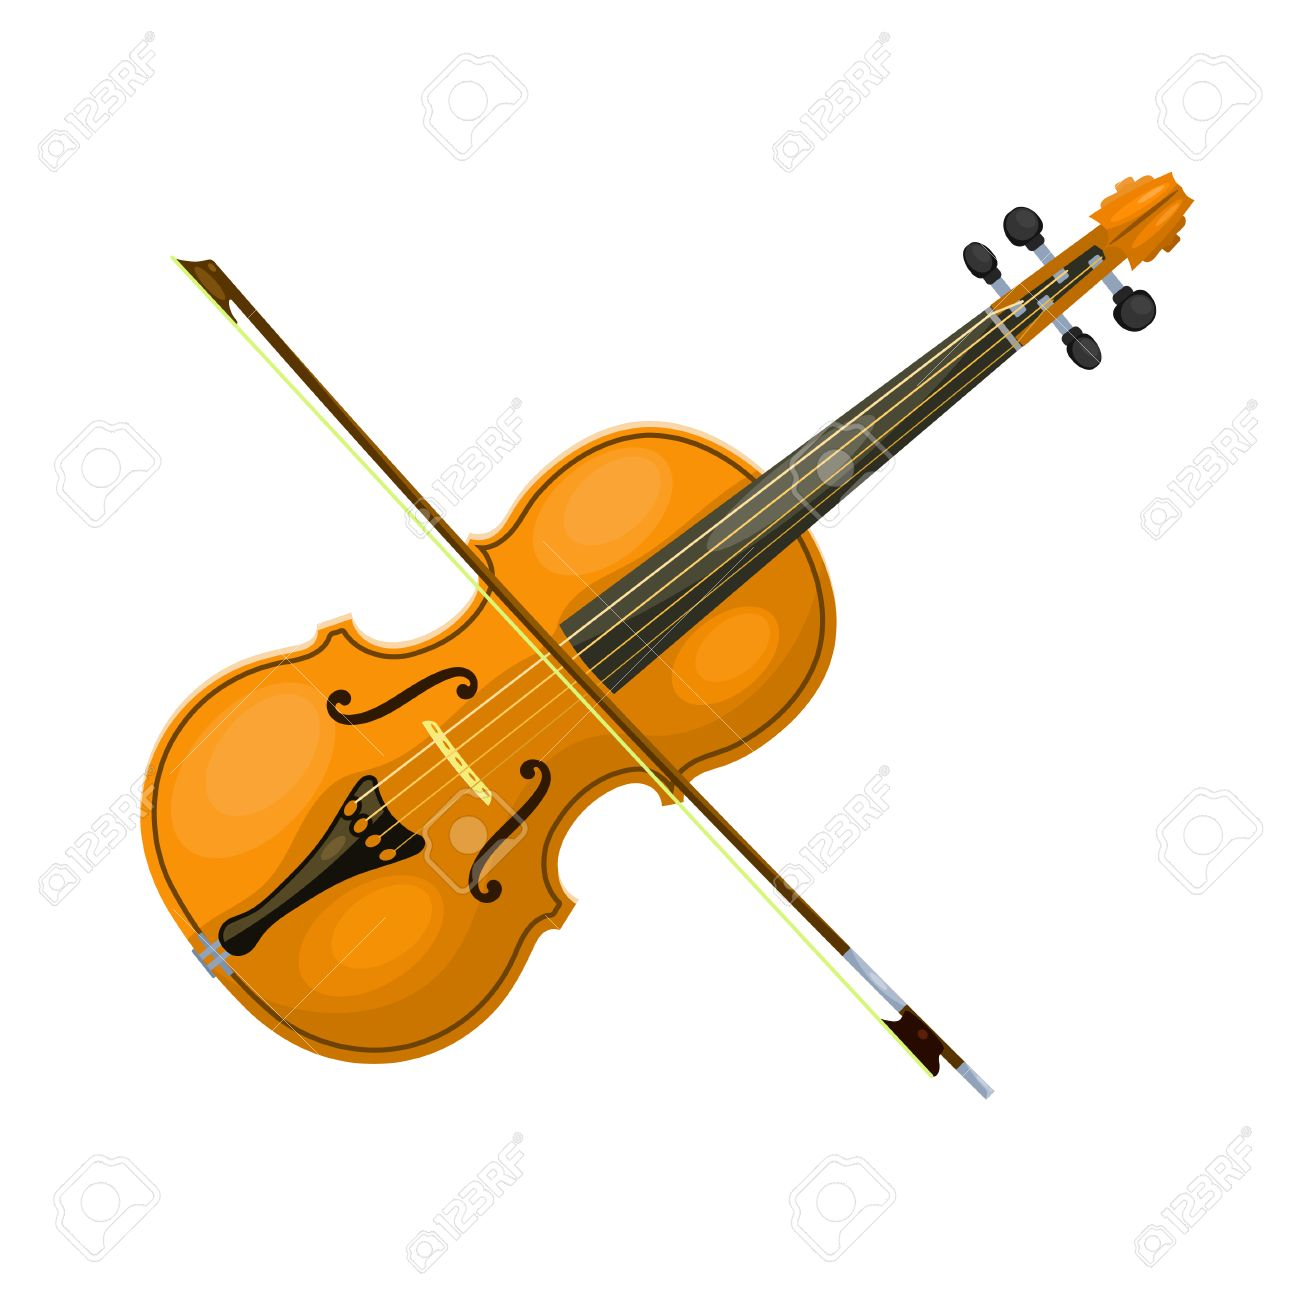 musical instrument violin with a bow on a white background cartoon rh 123rf com cartoon violin images cartoon violinist